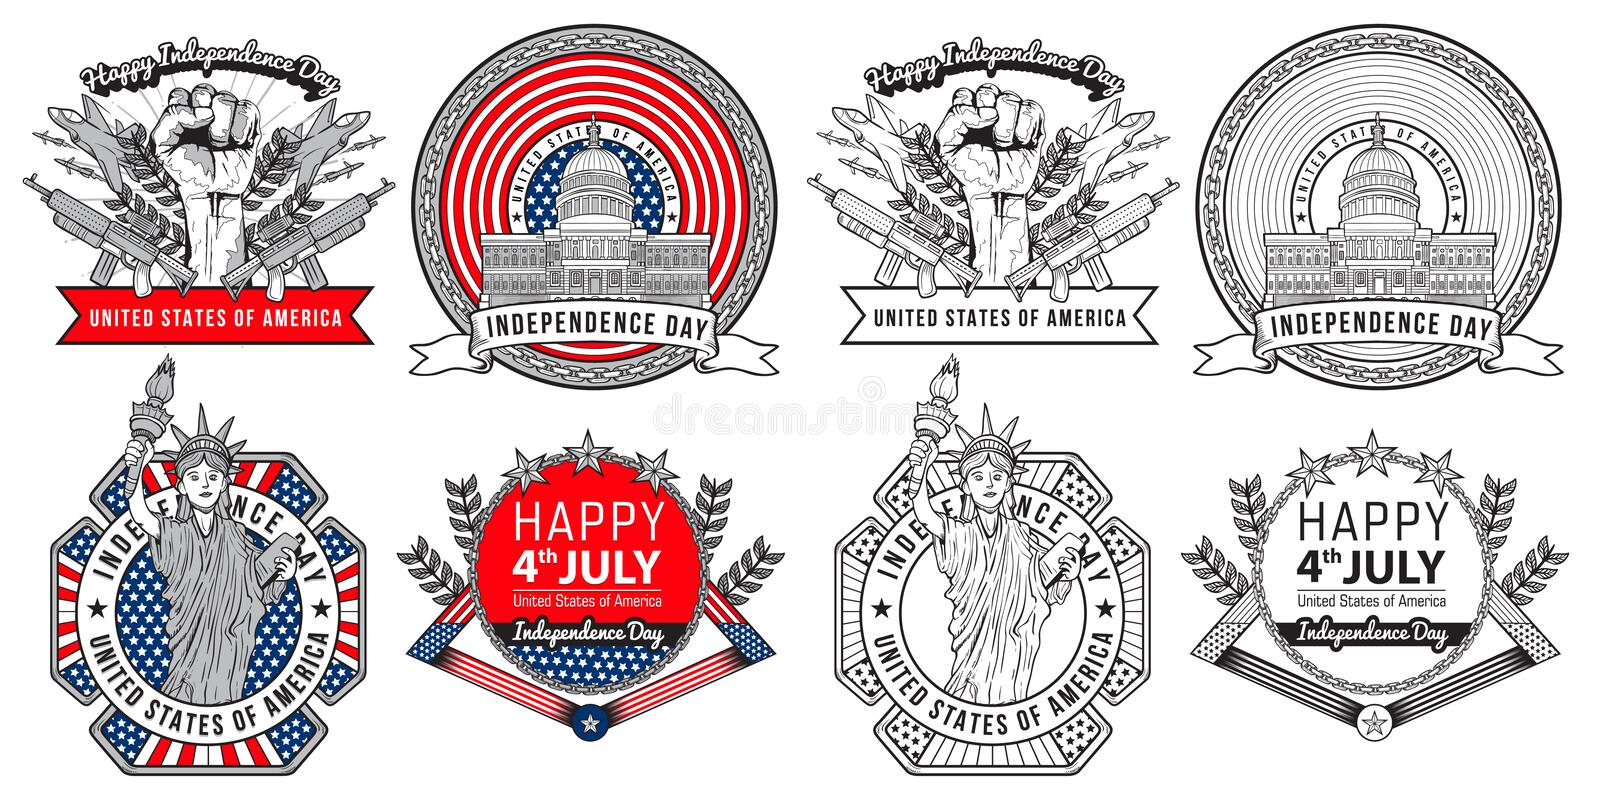 Label and logo design forth of july united states independence day greeting illustration. Easy to edit color stock illustration